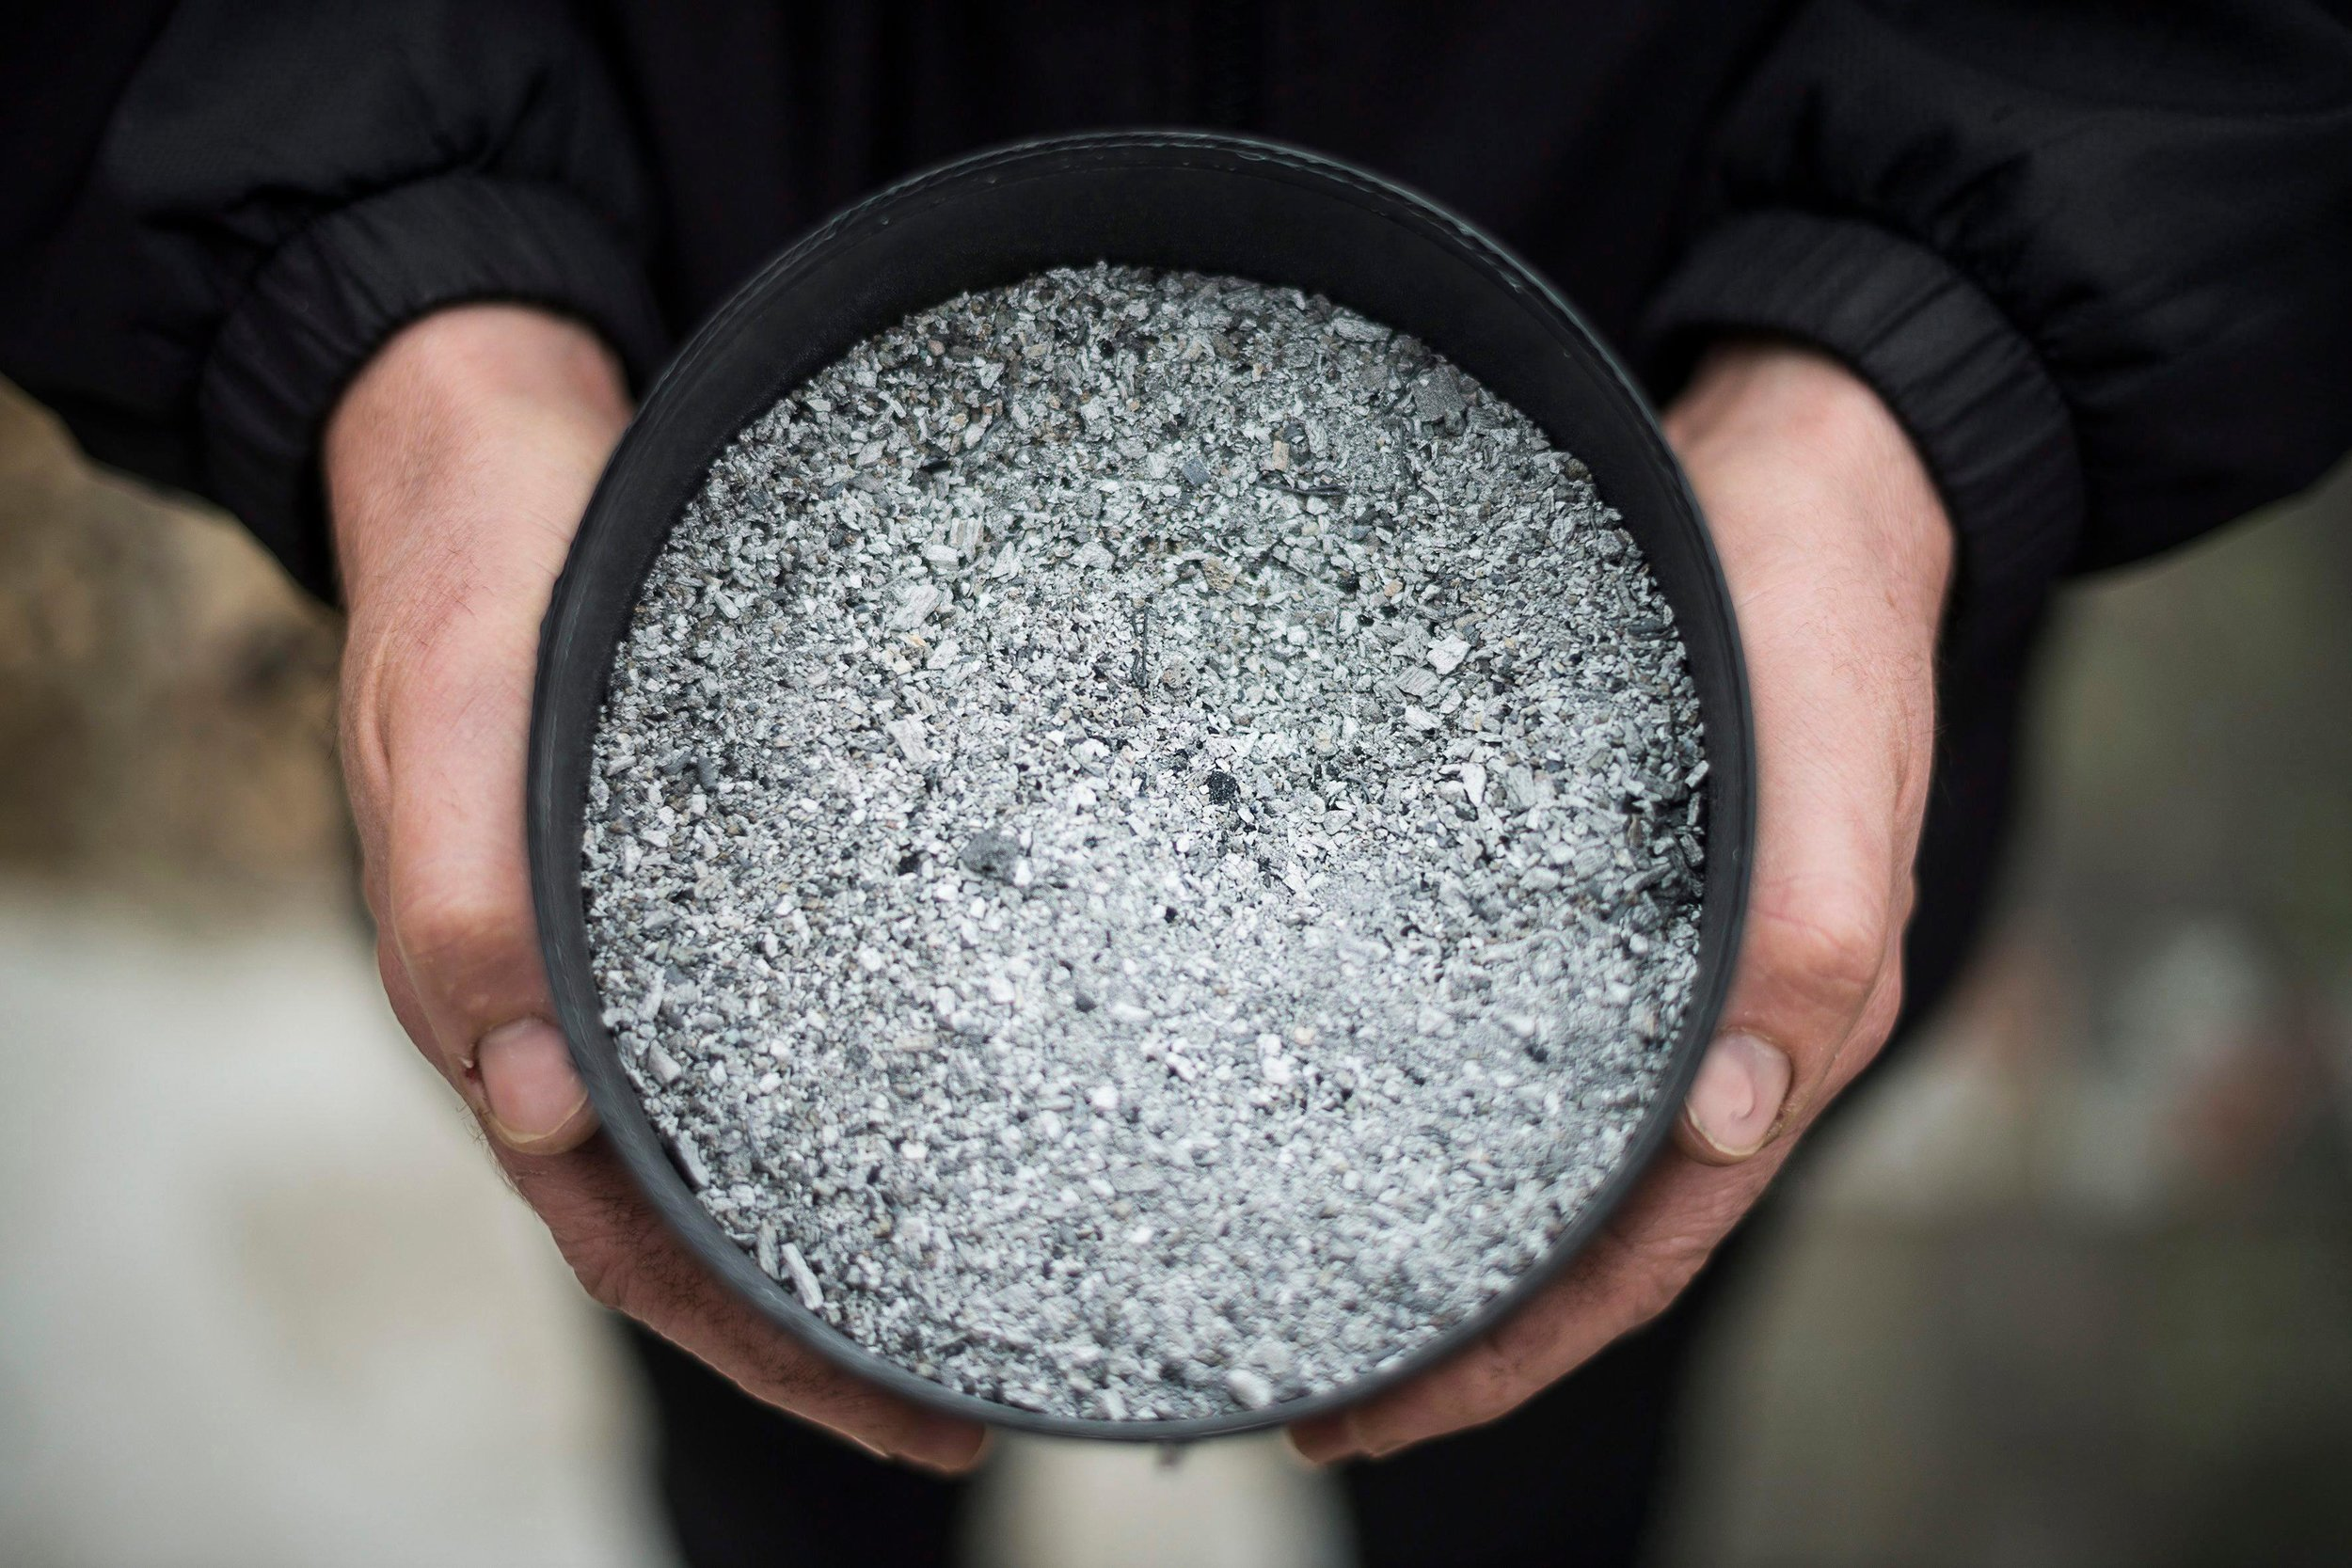 Human ashes that will be turned into a diamond